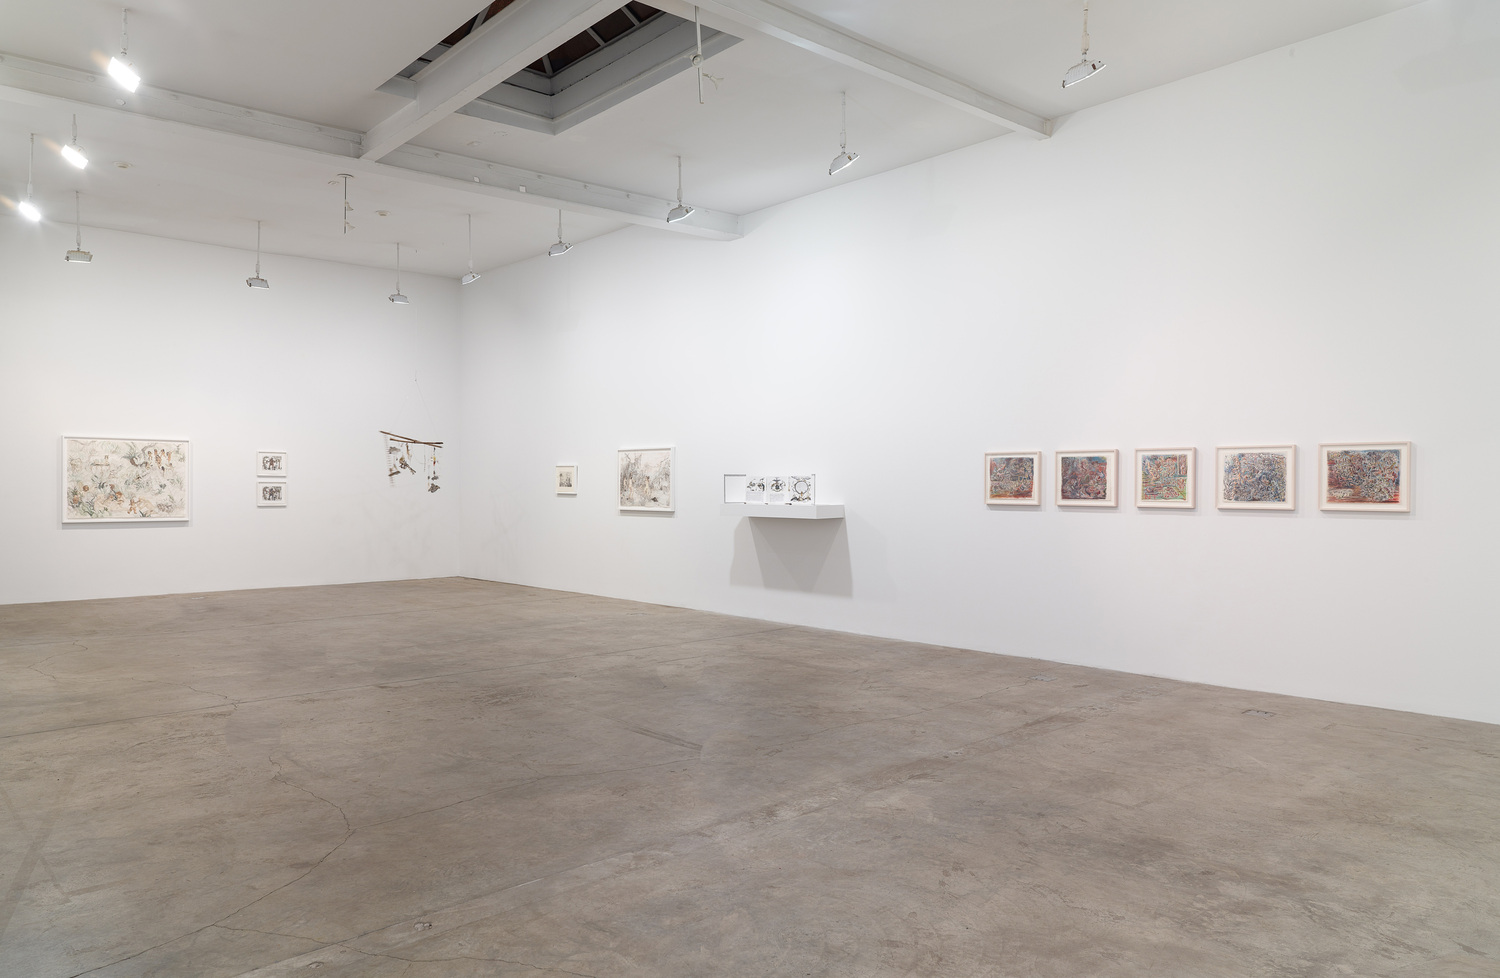 BodilyImaginaries_KoenigAndClinton_2015_Installation_View8_300DPI